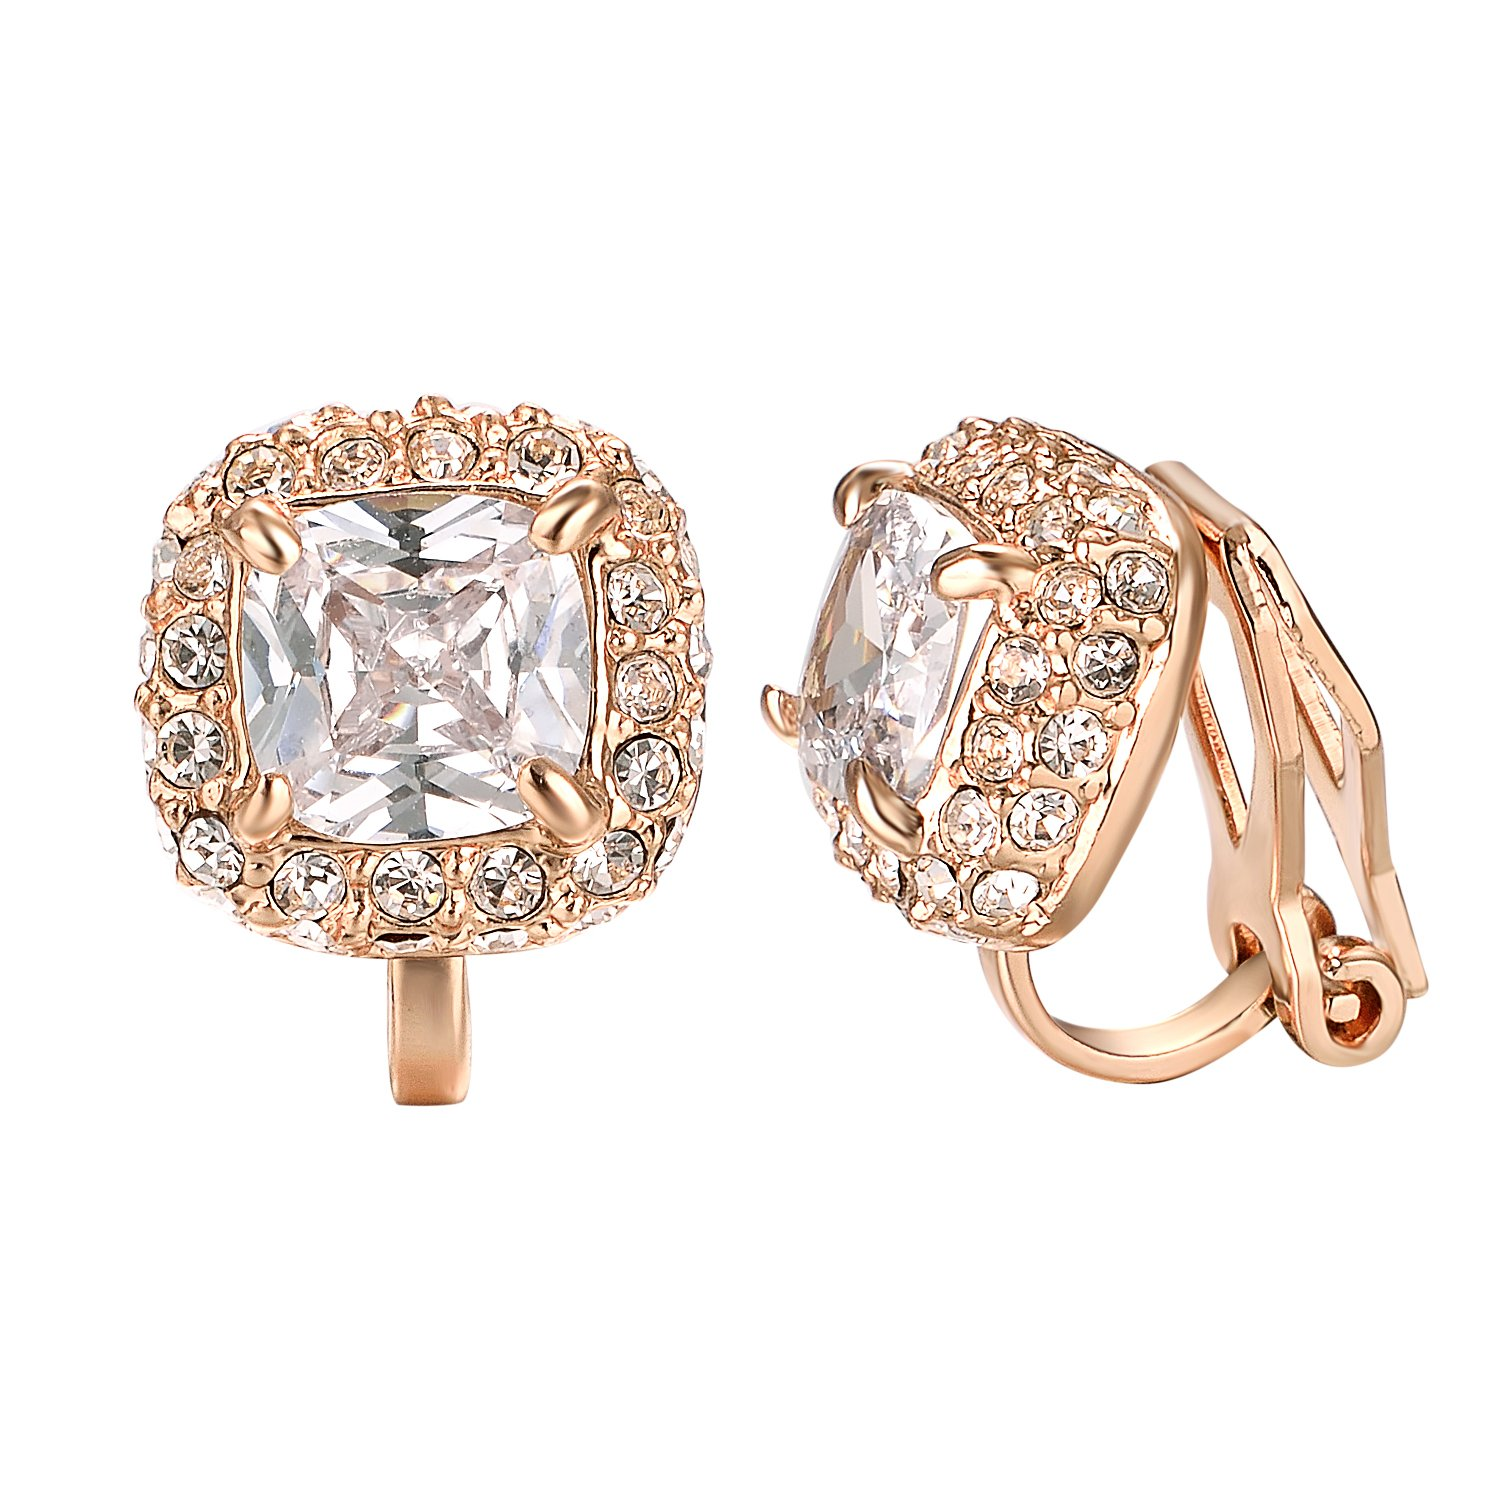 Yoursfs Clip On Earrings for Women Crystal Hypoallergenic Engagement Wedding Fashion Earrings Italina E743R2-US